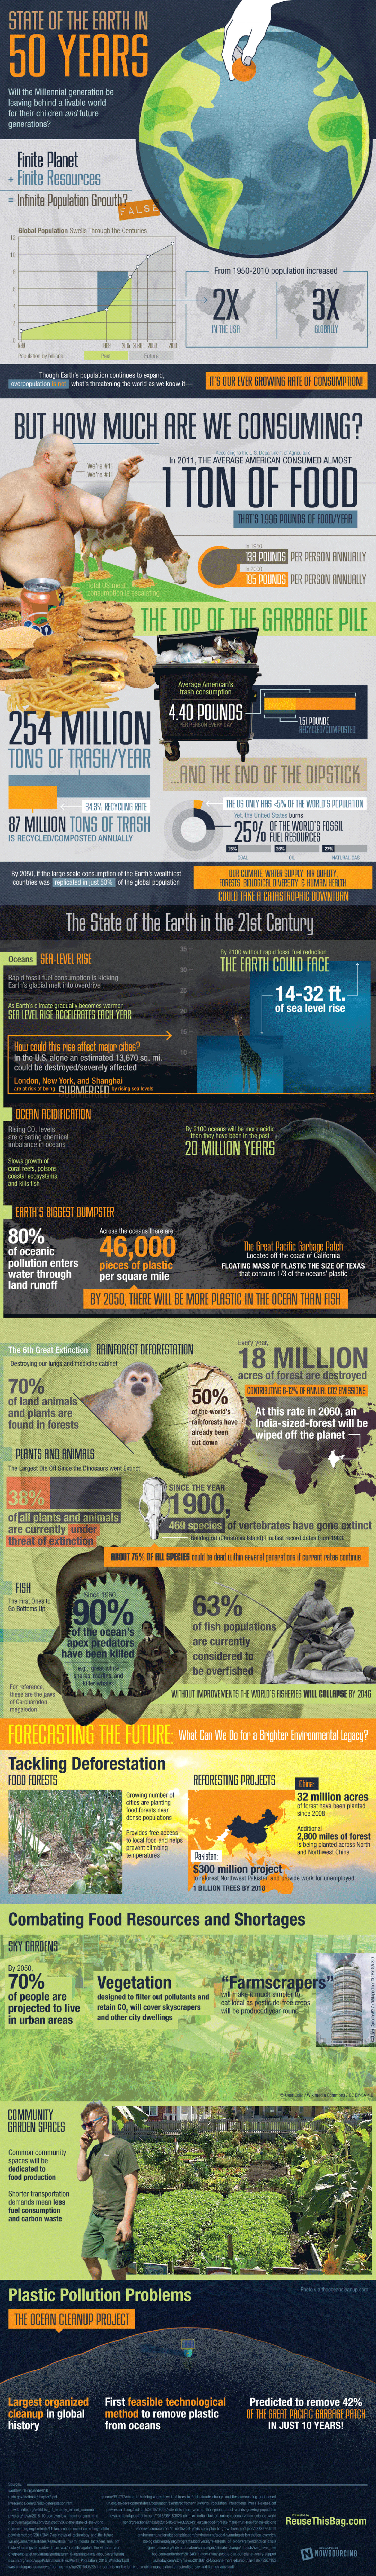 How The Earth Will Fare With Unfettered Fossil Fuel Use And Population Growth Infographic